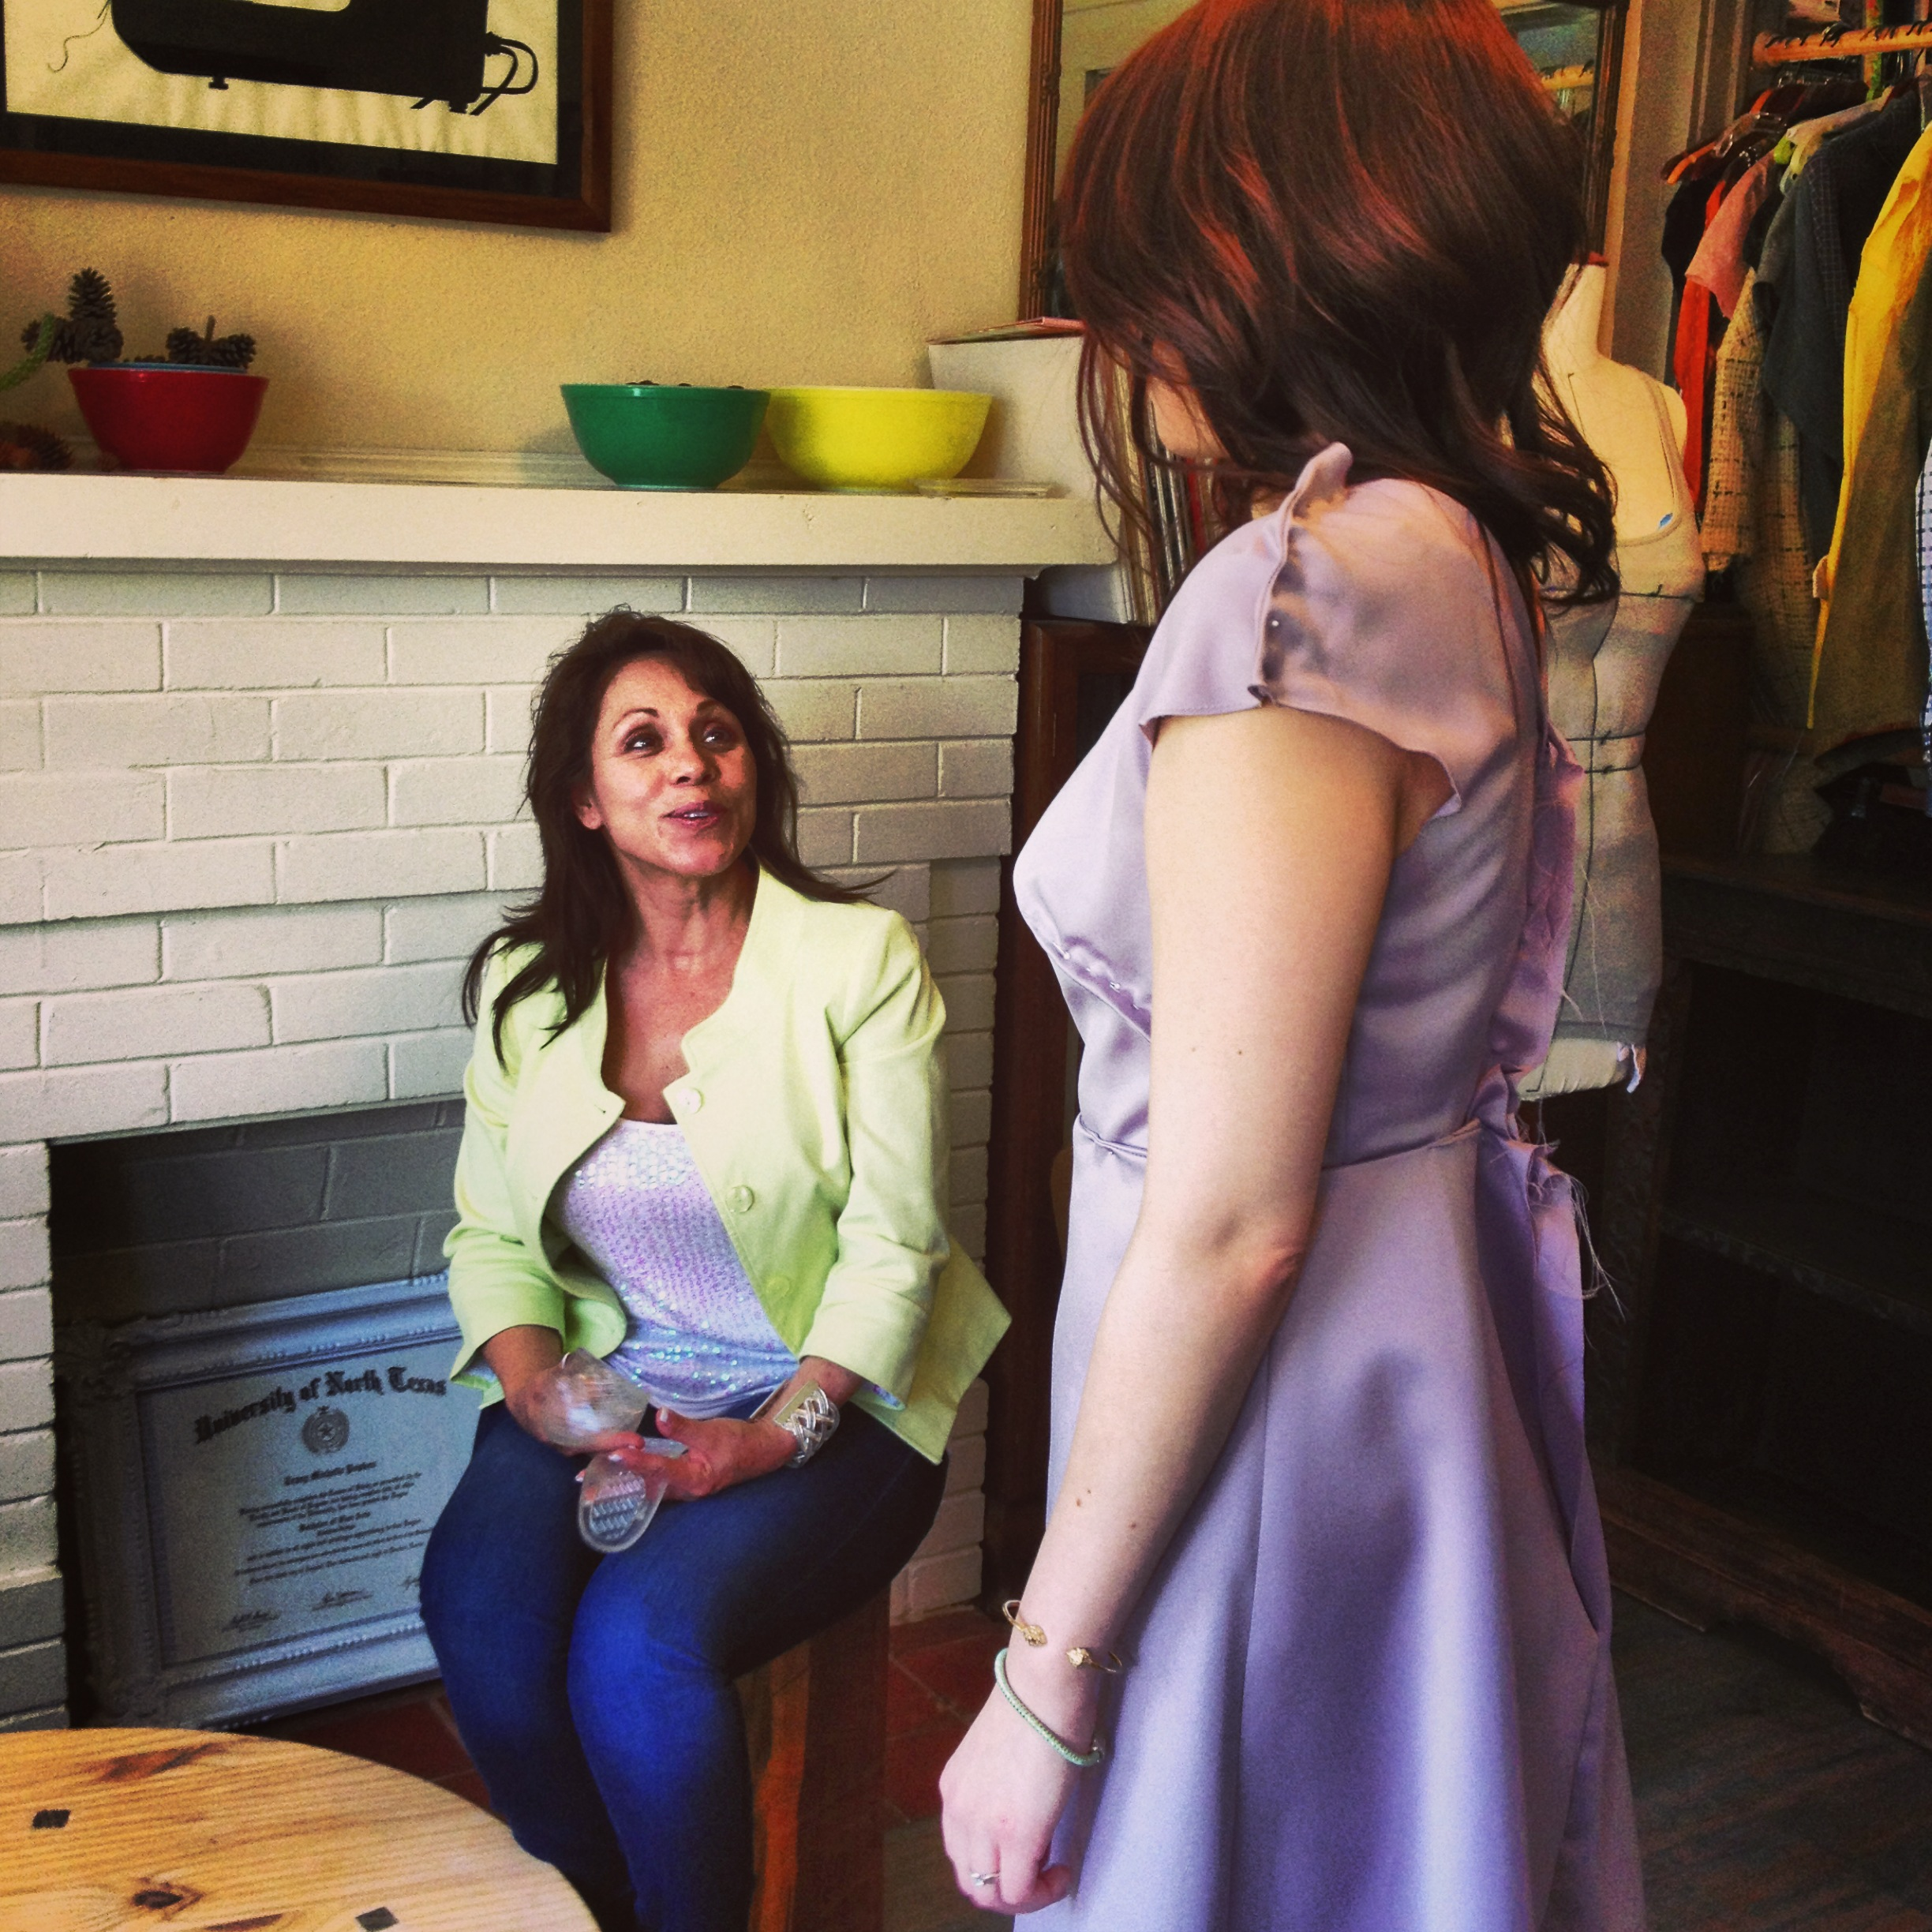 Mother and daughter at the first fitting.